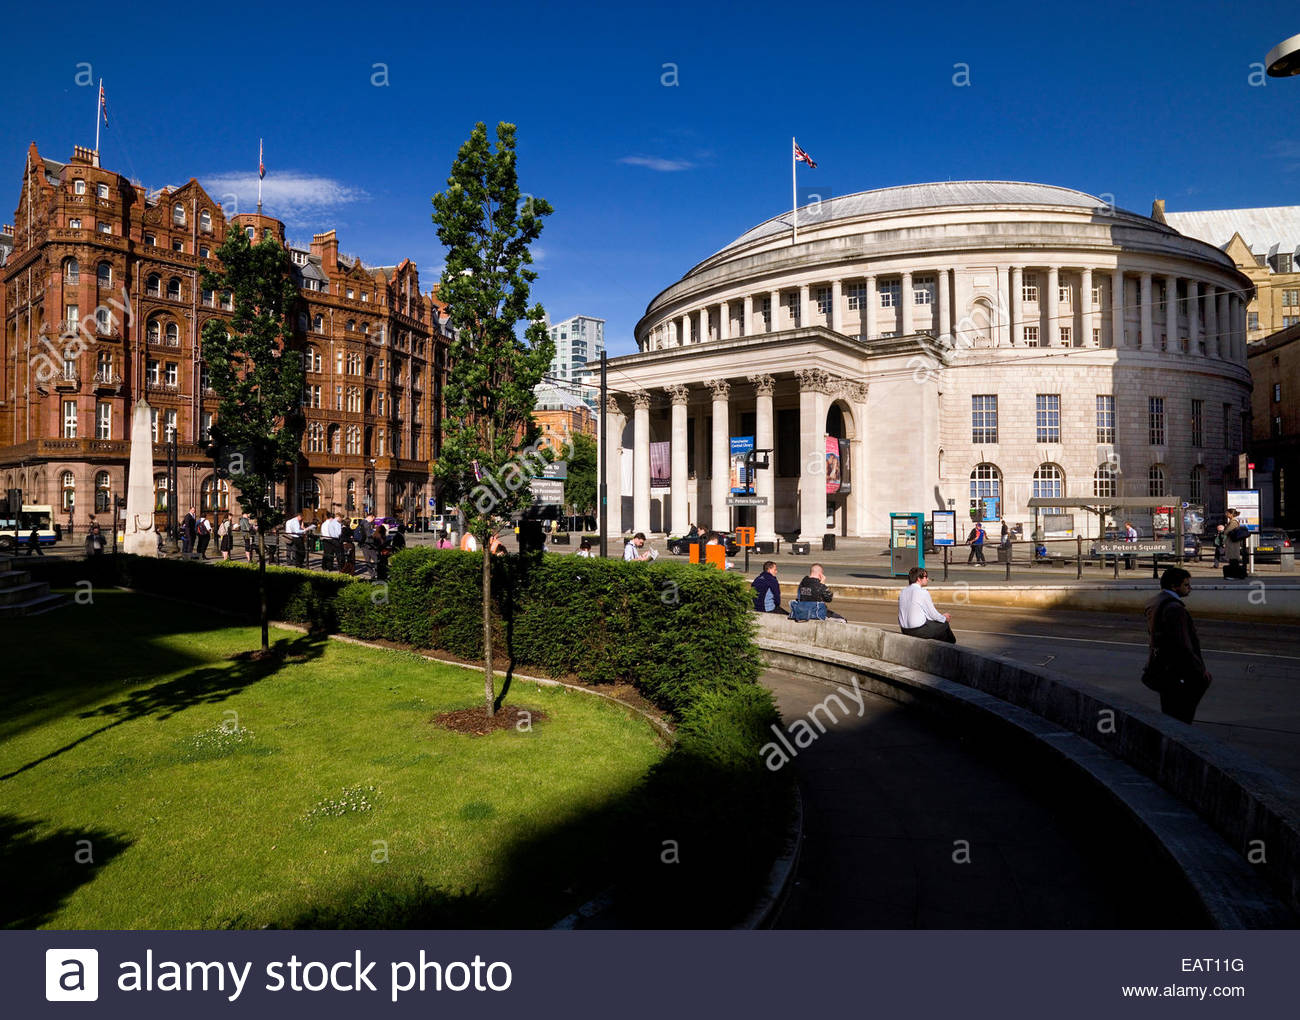 The Central Library in Manchester's St. Peter's Square, England. - Stock Image